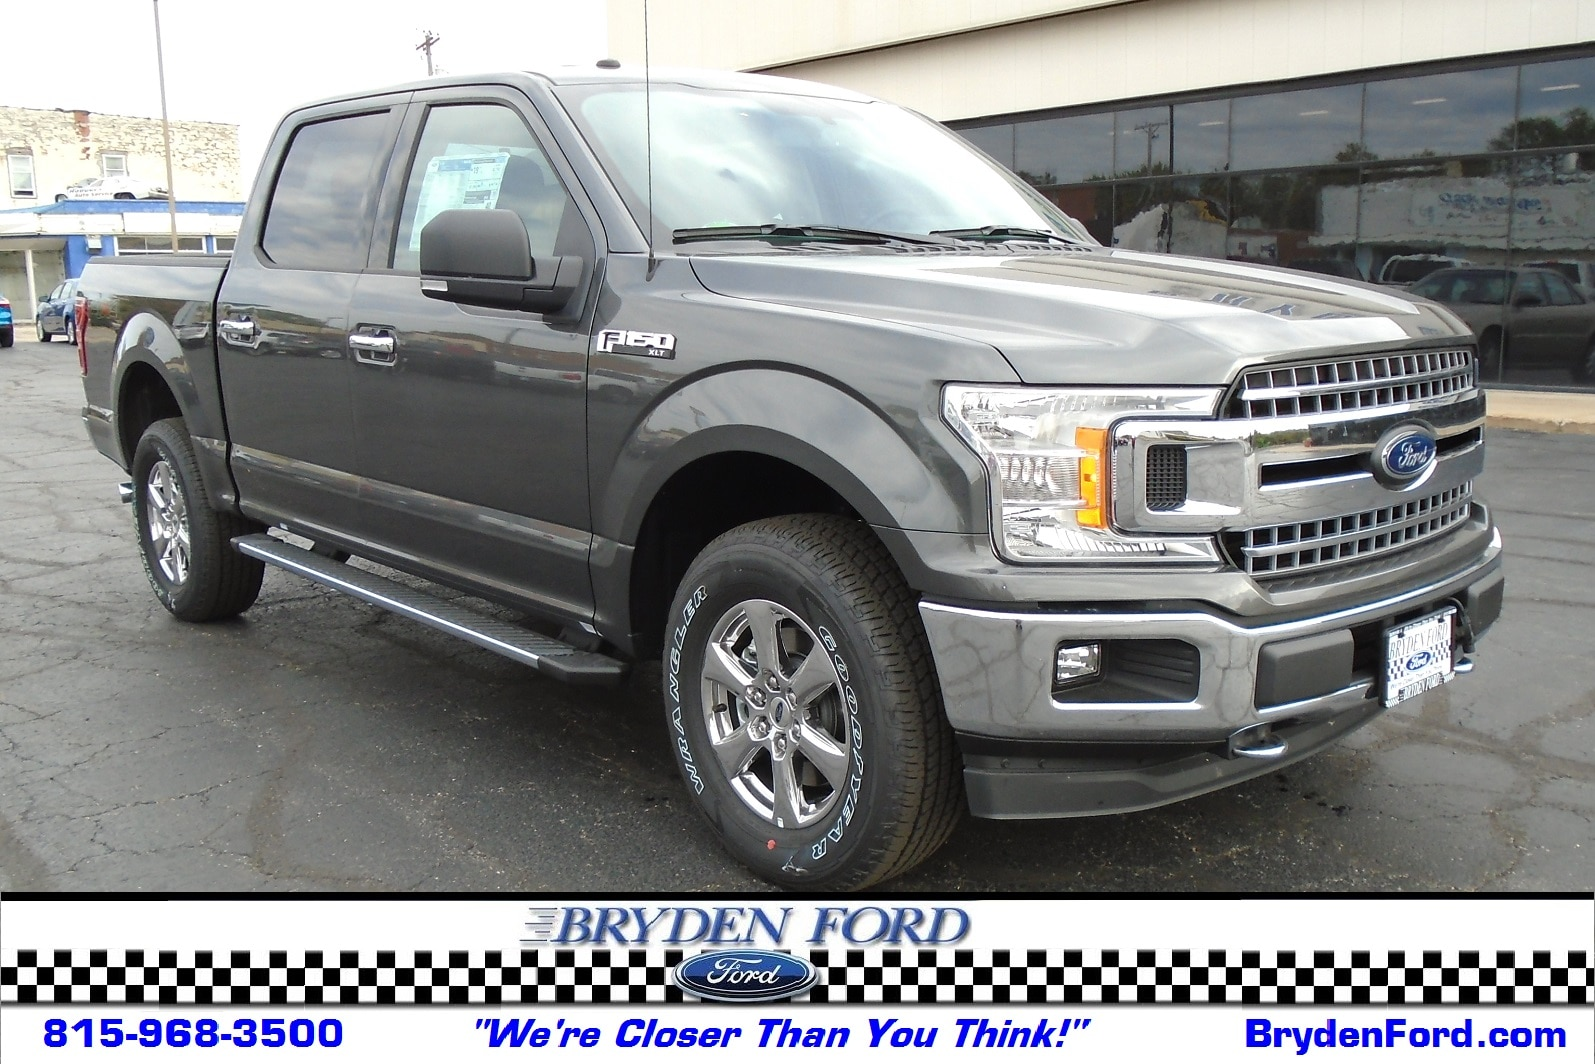 2018 Ford F150 XLT 4X4 5.5' Bed Truck